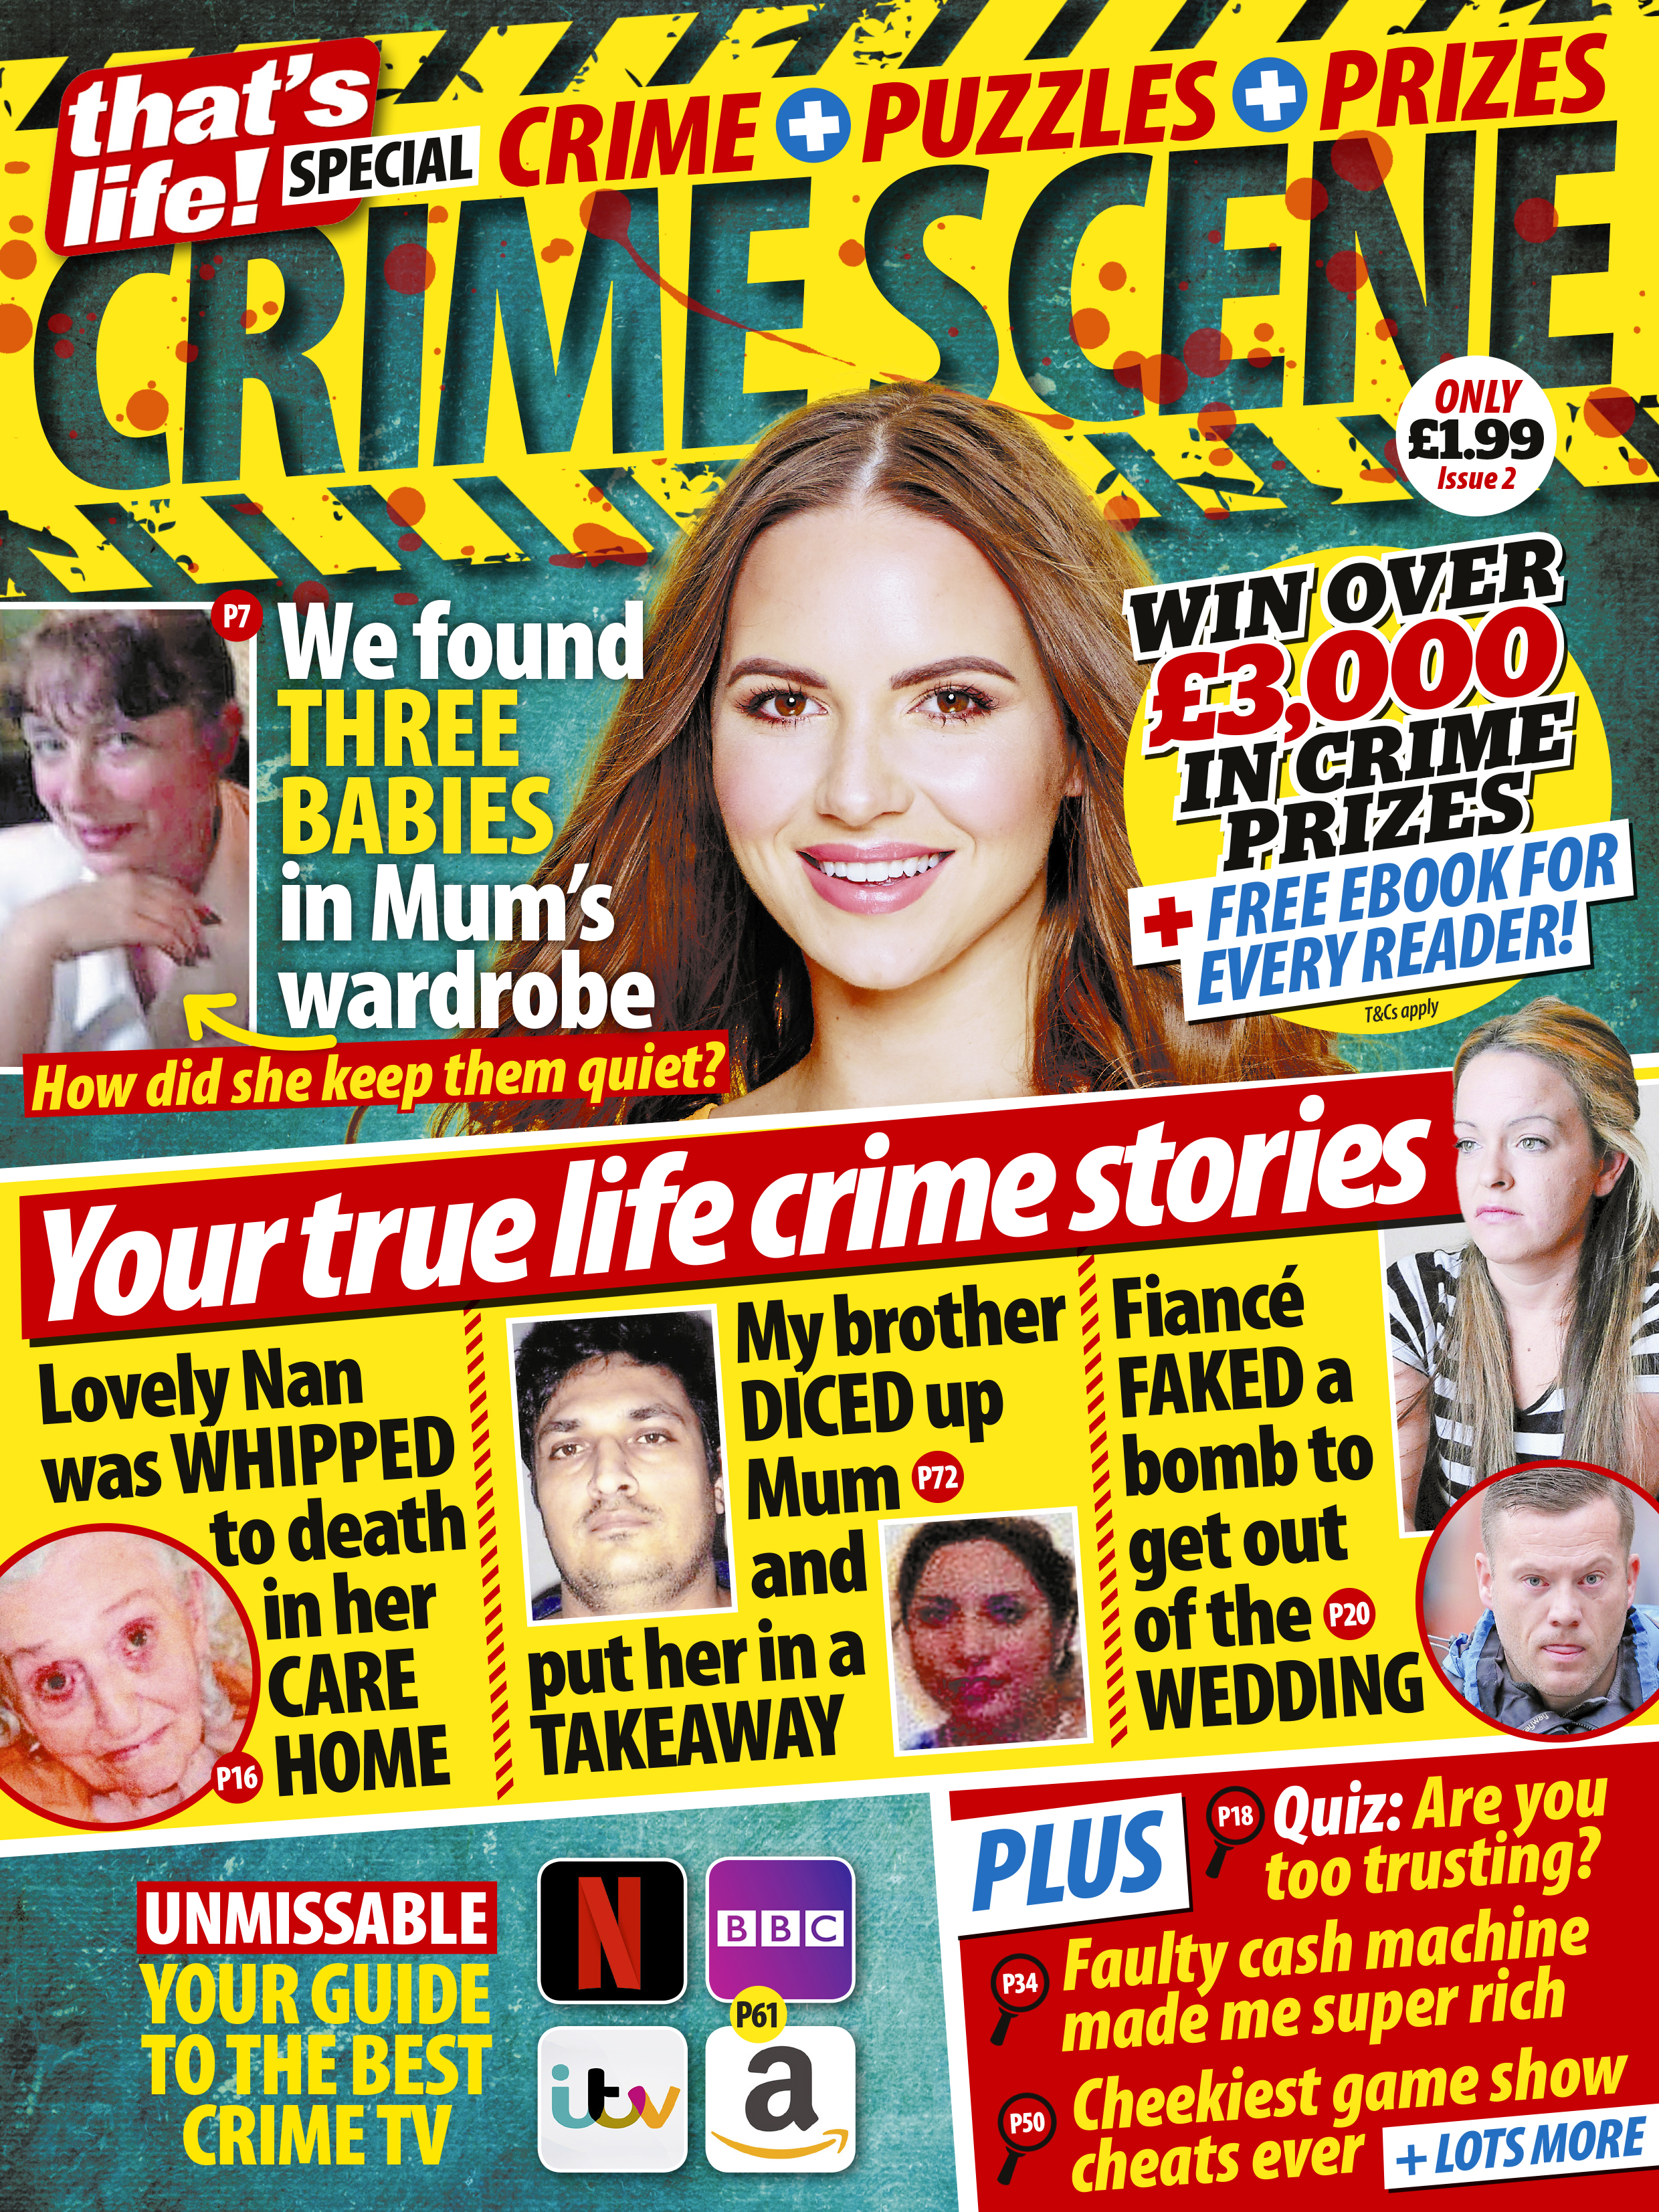 NEW_Crime Scene Cover.jpg